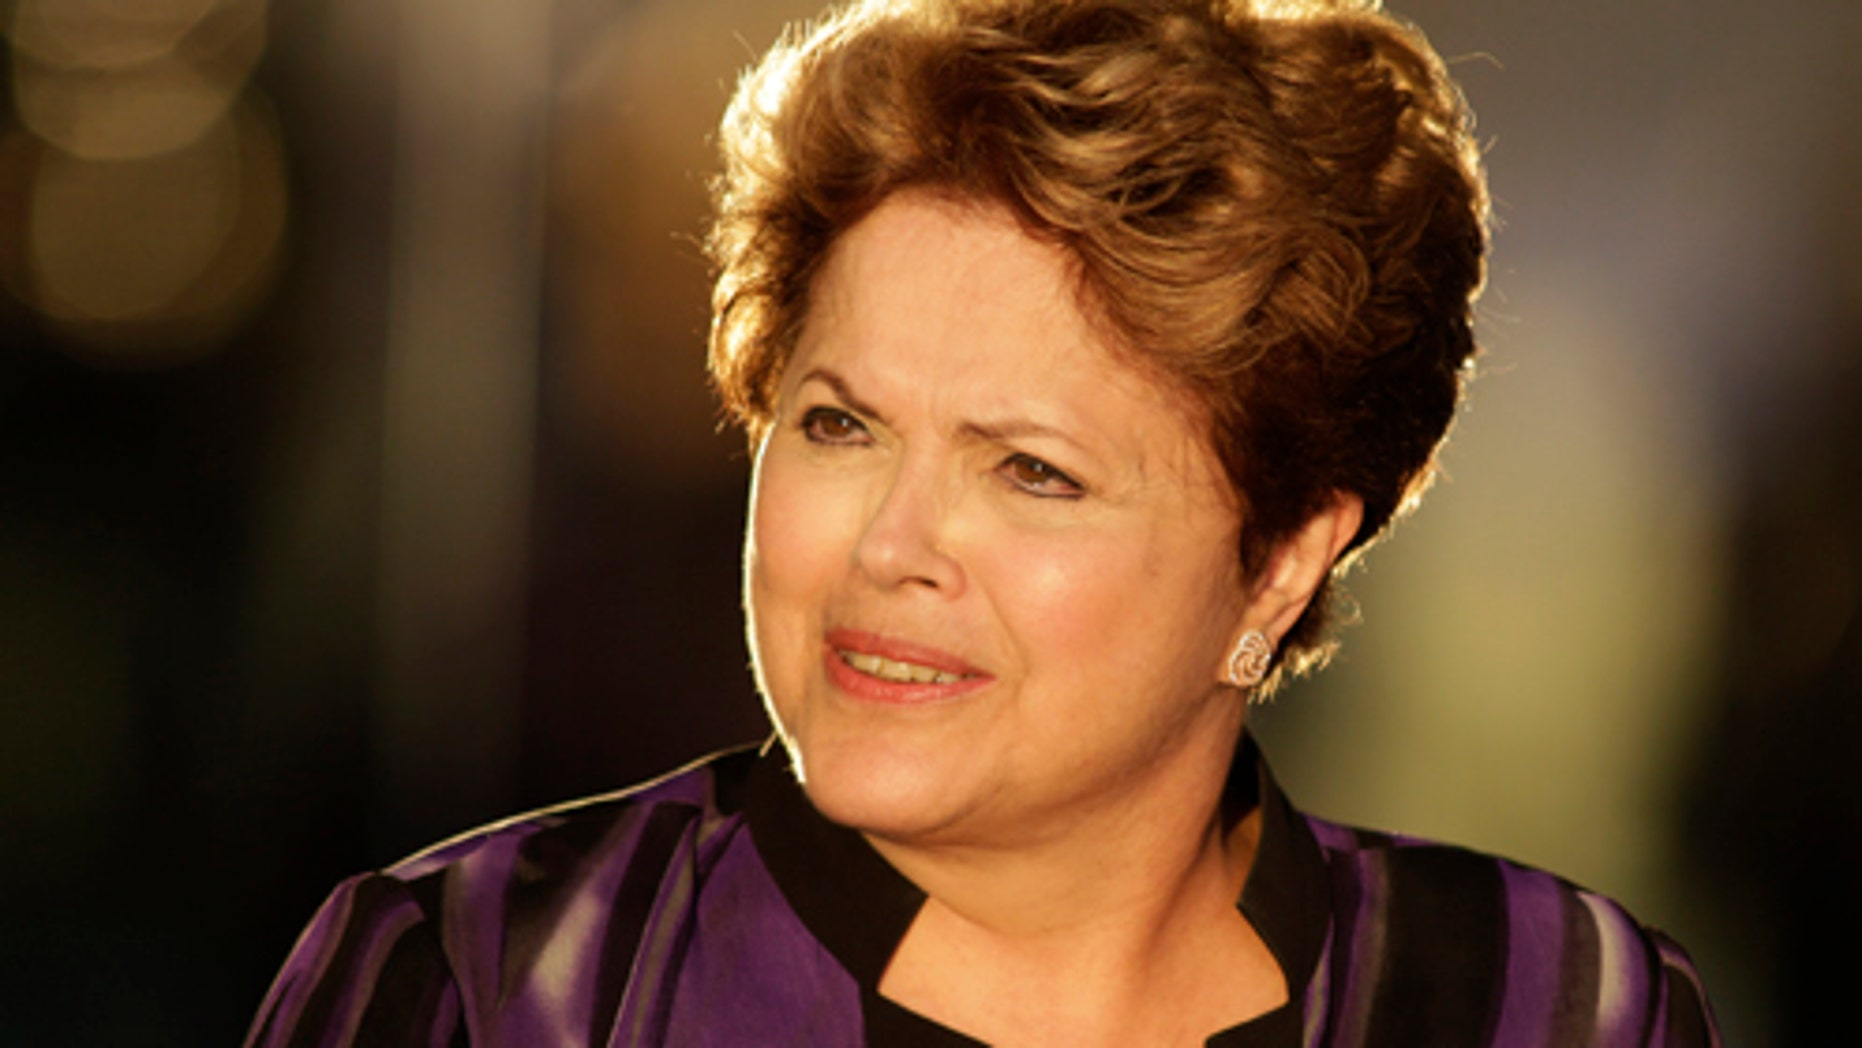 """Brazil's President Dilma Rousseff arrives to meet members of Brazil's soccer team at Alvorada palace in Brasilia, Brazil, Monday, Sept. 2, 2013. The Brazilian government condemned a U.S. spy program that reportedly targeted the nation's leader, labeled it an """"unacceptable invasion"""" of sovereignty and called Monday for international regulations to protect citizens and governments alike from cyber espionage. (AP Photo/Eraldo Peres)"""